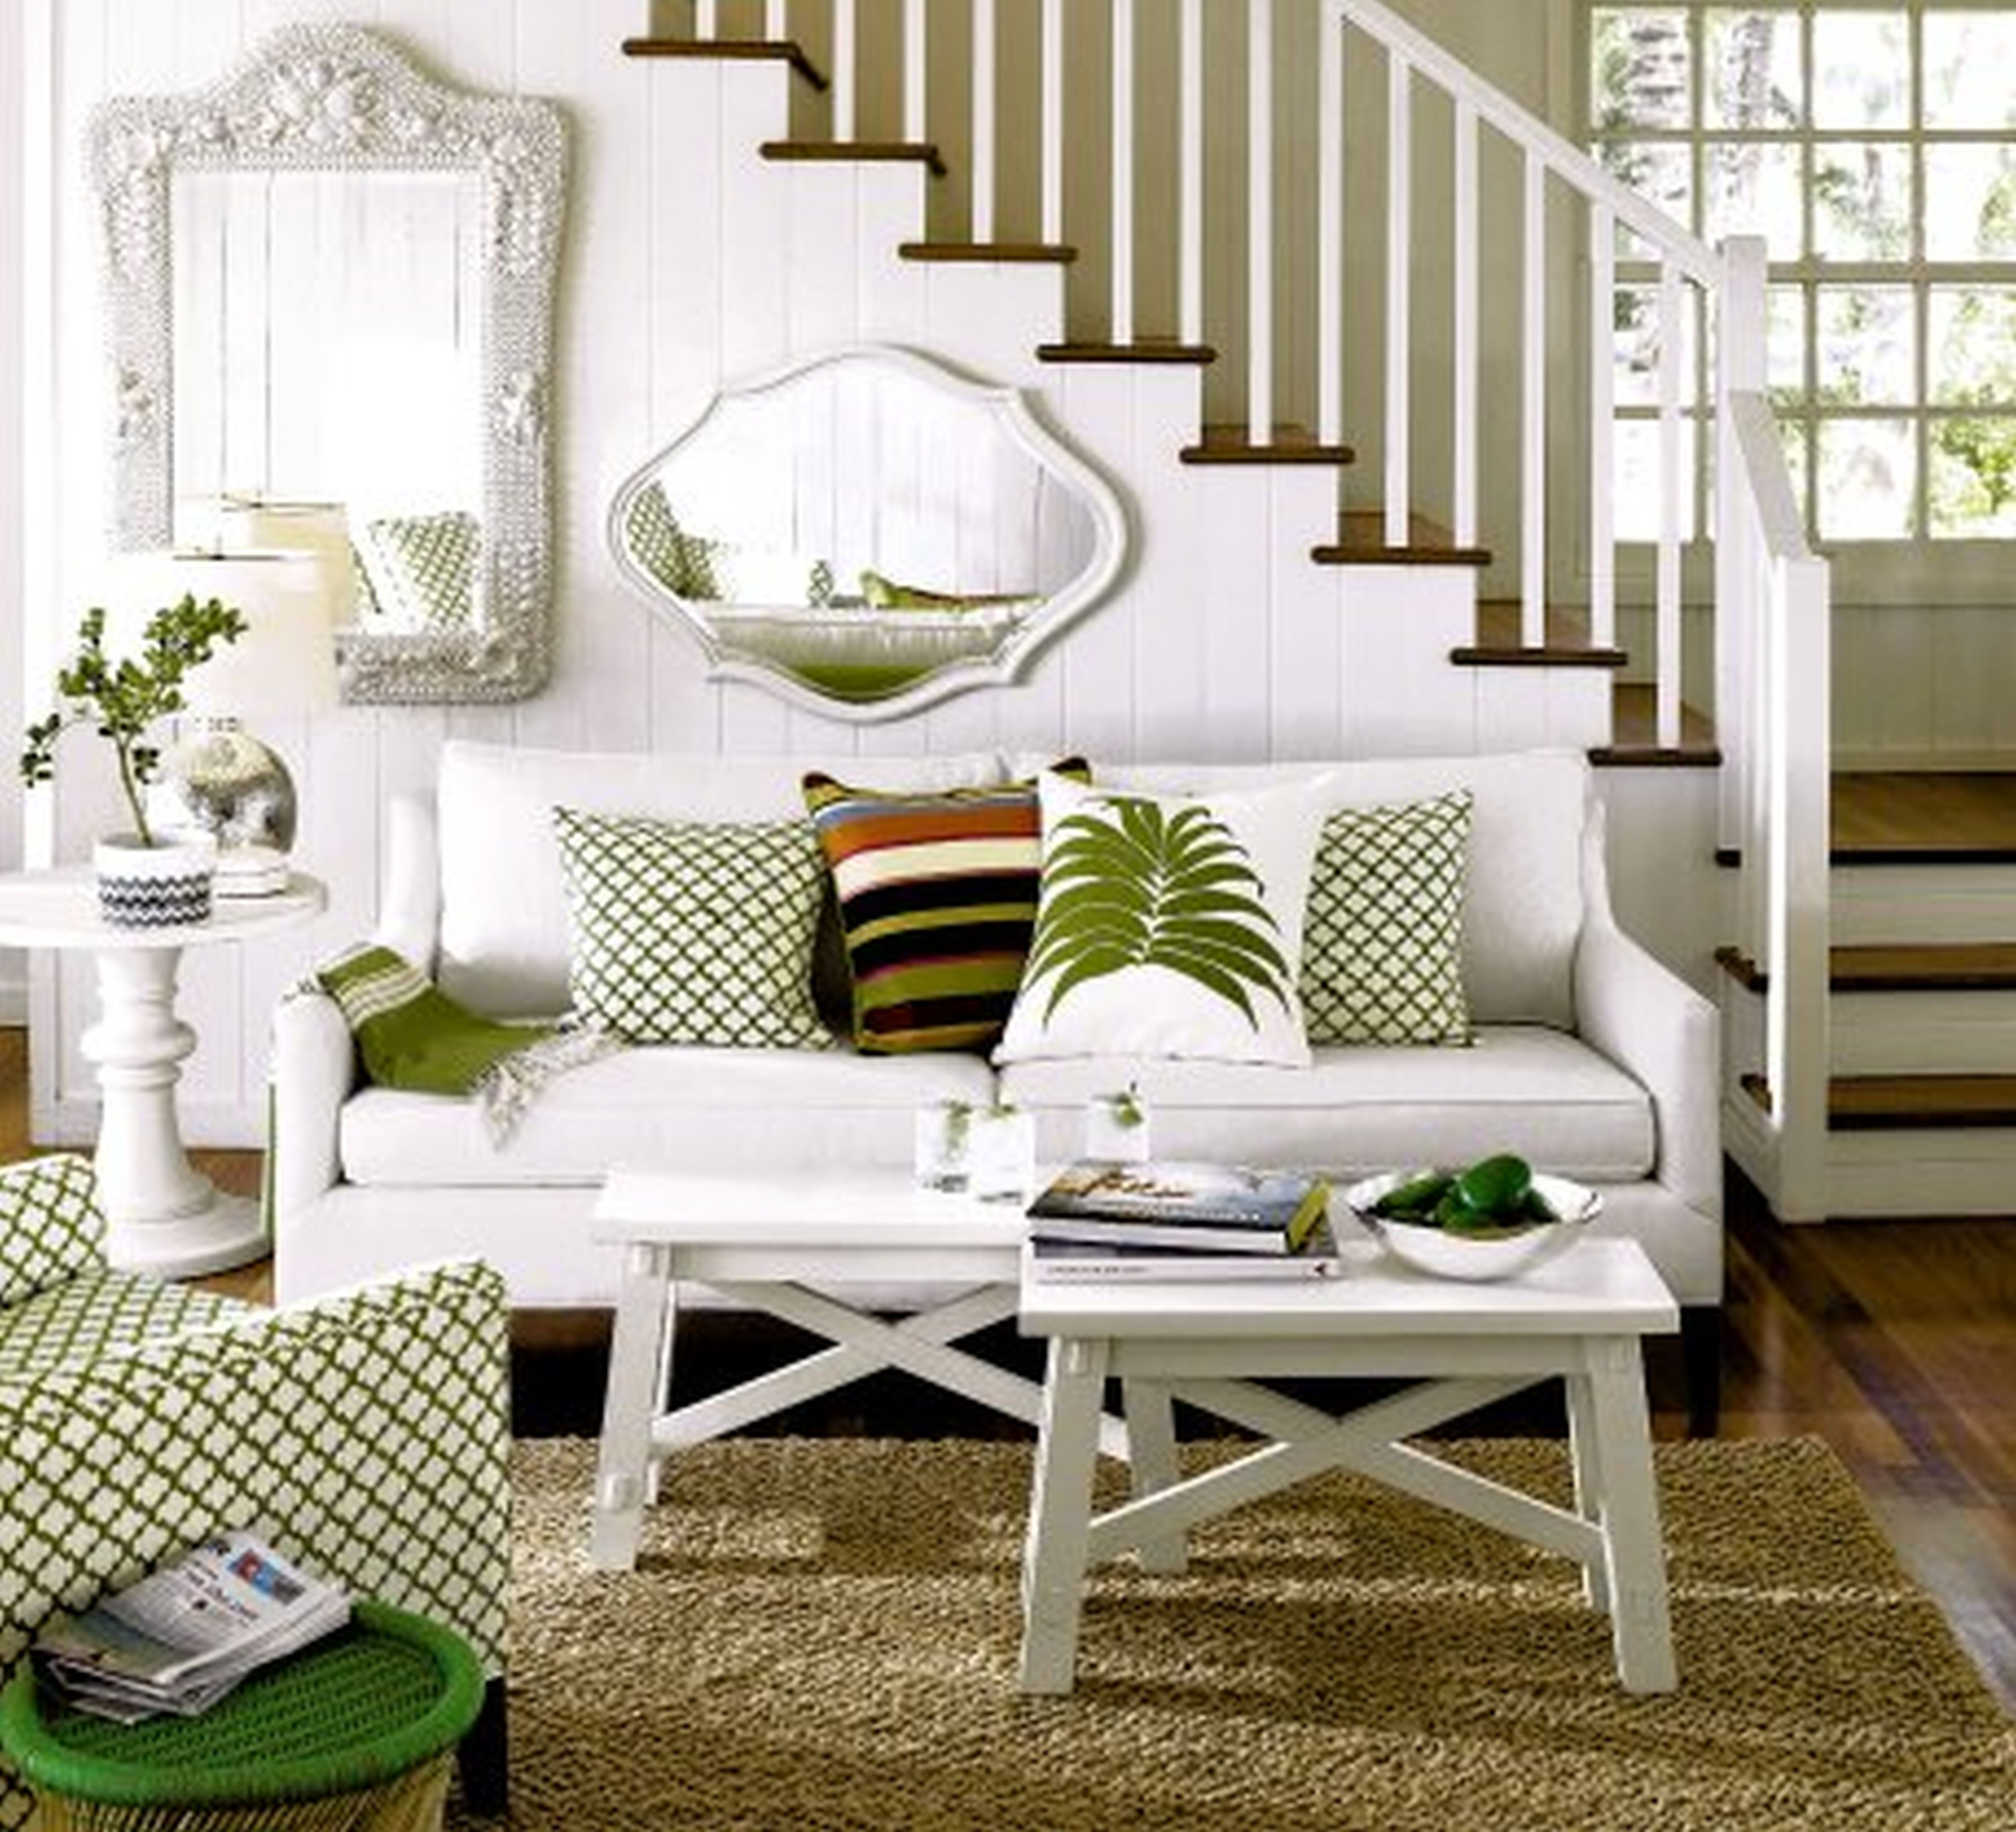 Design Ideas For Small Spaces Living Rooms Alluring Interior House Decor Inspiration Graphic Interior House Decor Decorating Design